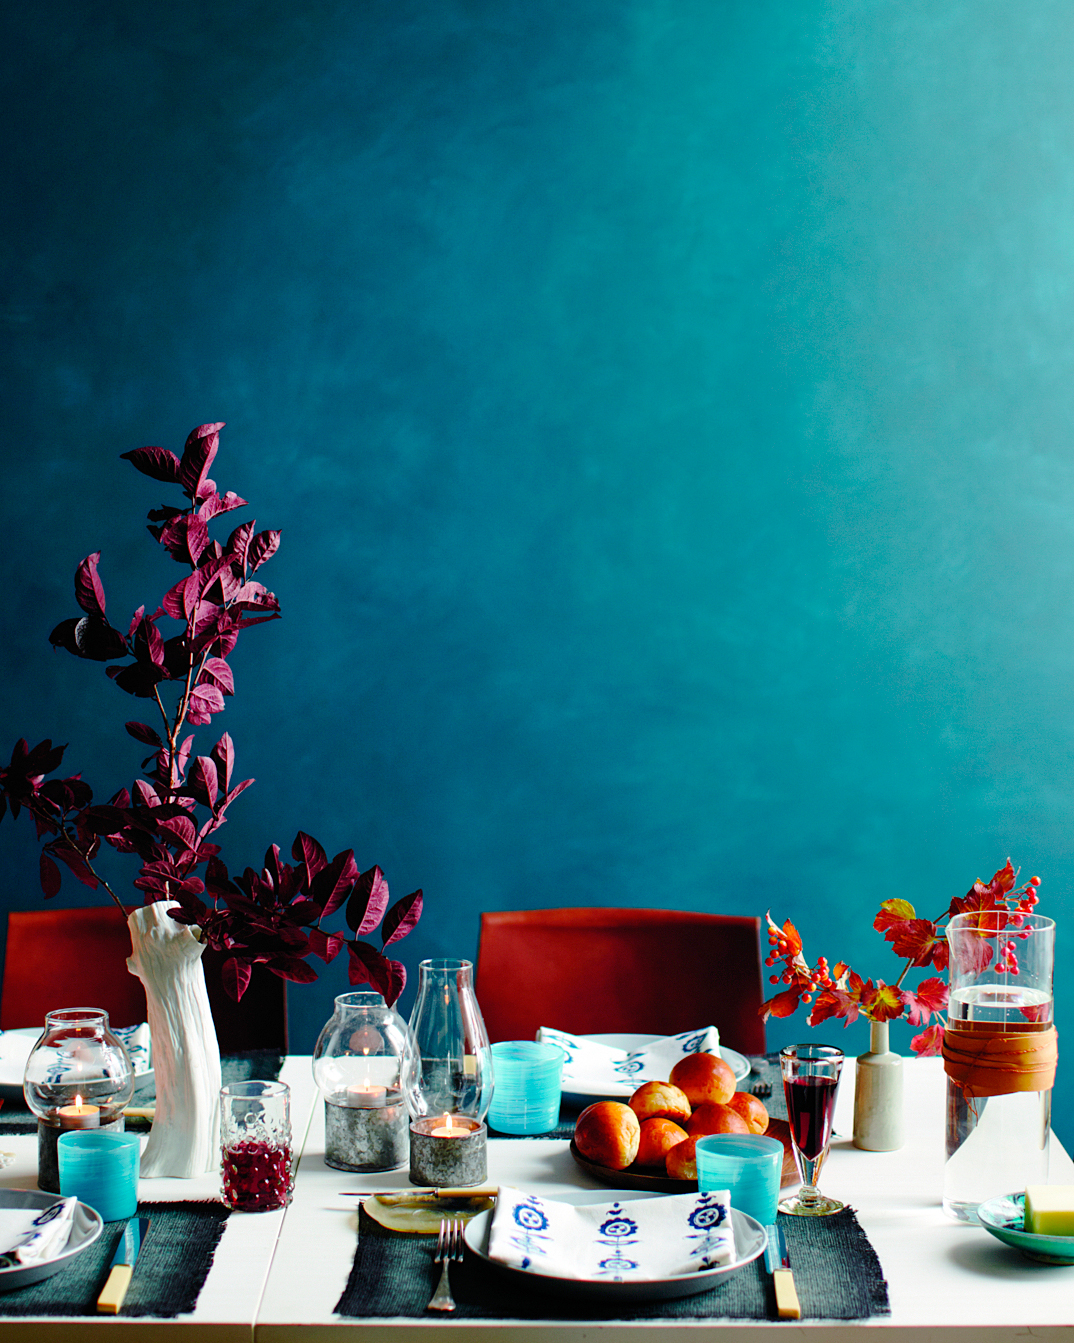 Richly Colored Table Setting